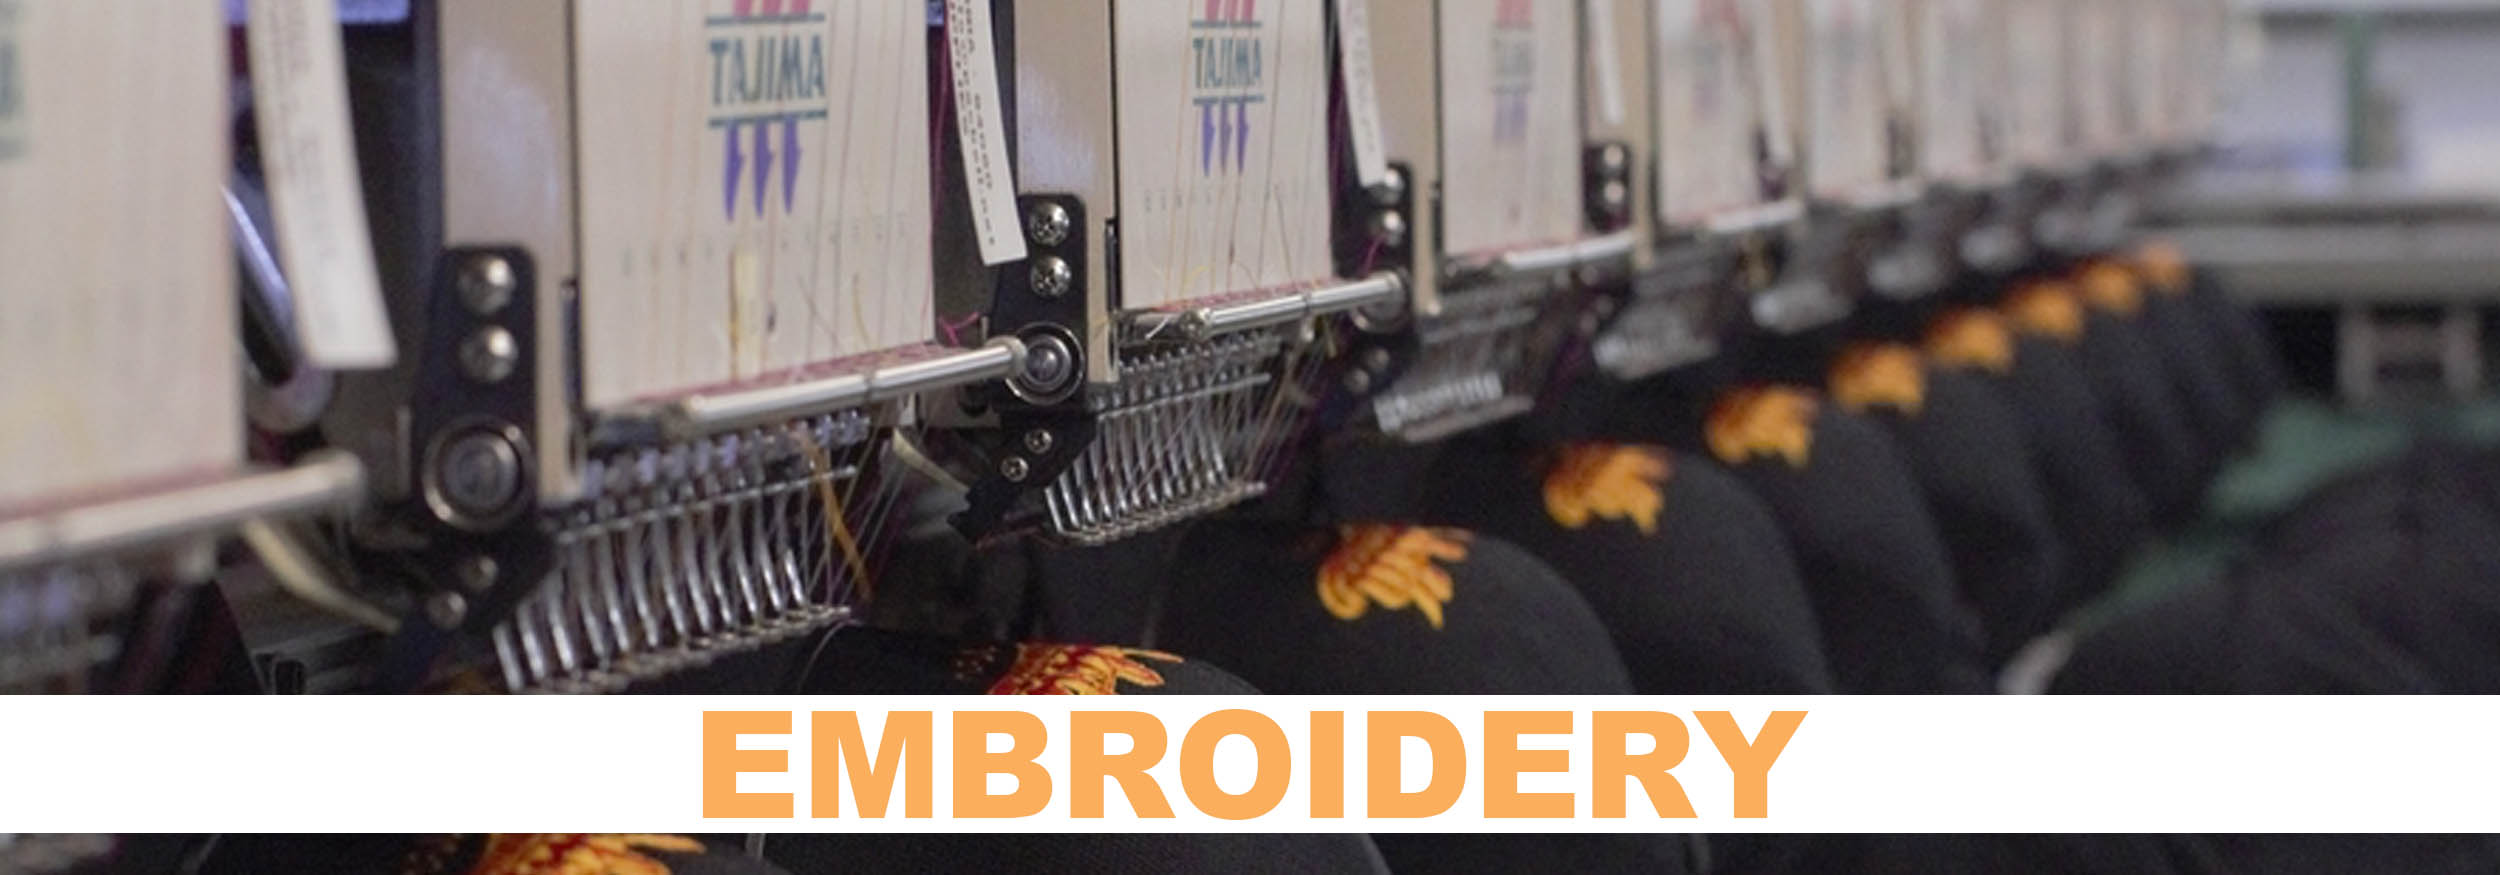 EMBROIDERY NEW BANNER .jpg